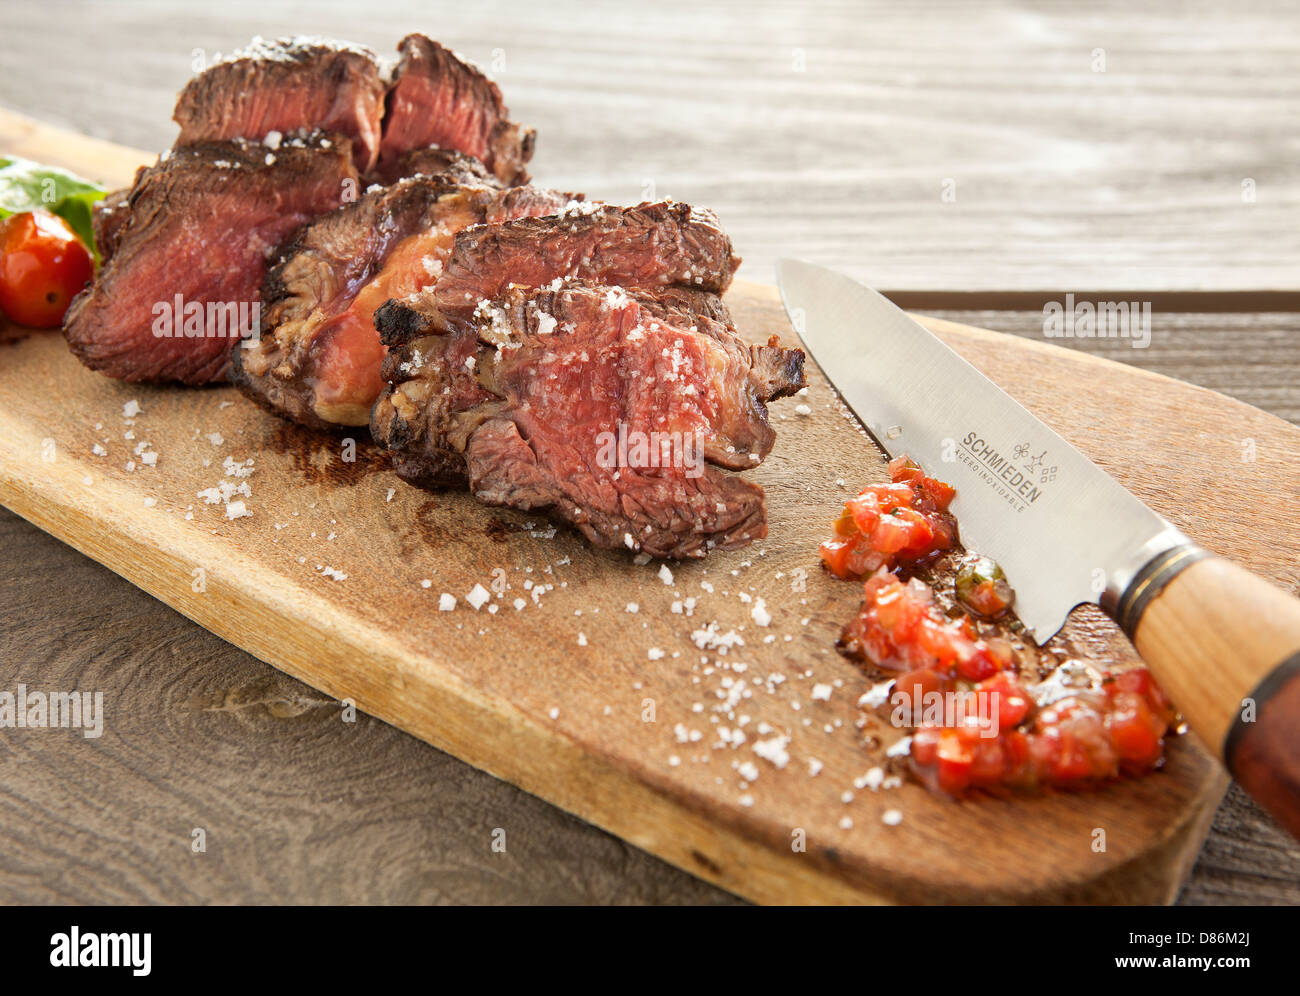 A choice cut of all natural Argentinian beef from the Cavas Wine Lodge Resort in Mendoza, Argentina - Stock Image